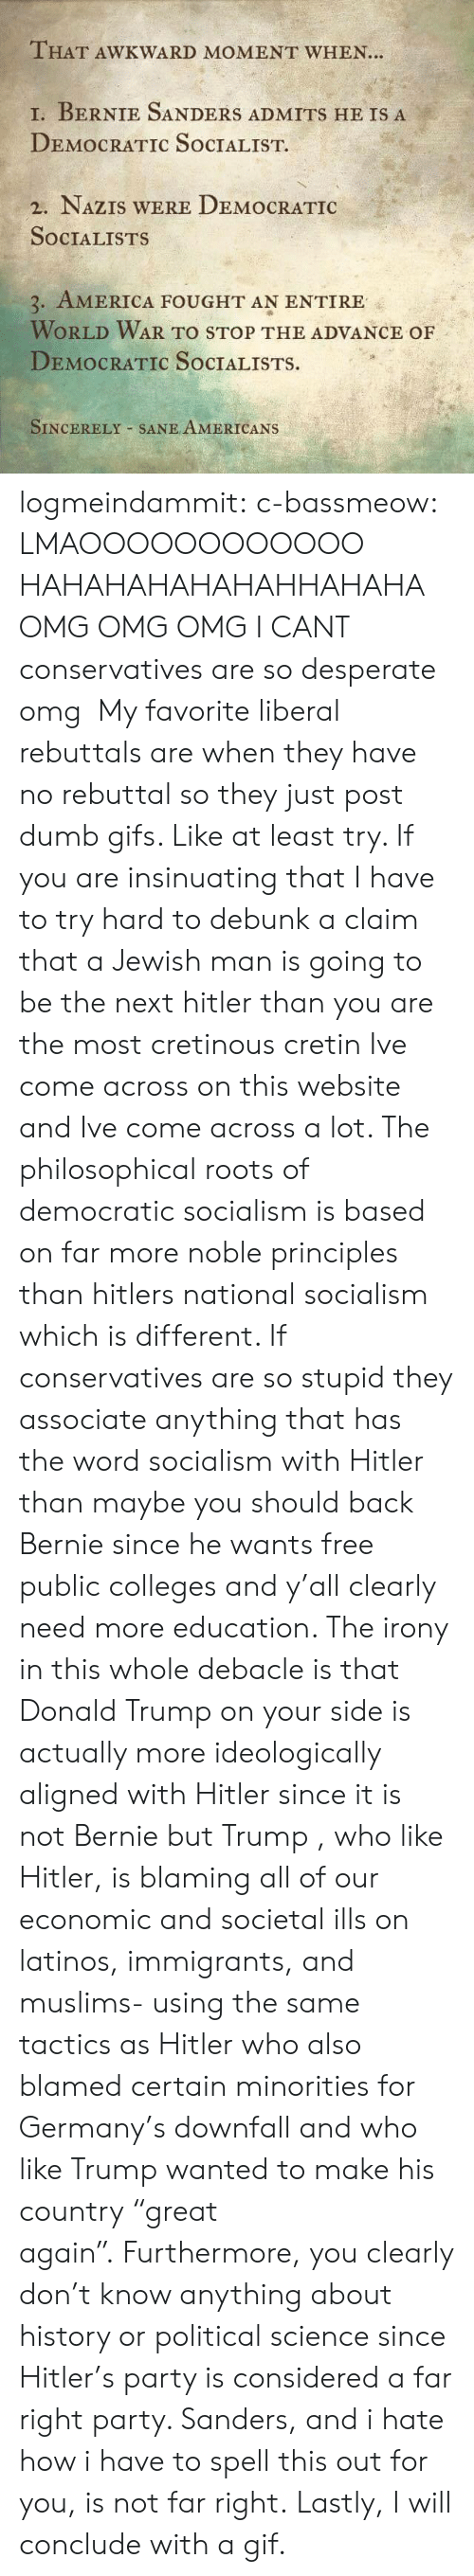 """America, Bernie Sanders, and Desperate: THAT AWKWARD MOMENT WHEN..  1, BERNIE SANDERS ADMITS HE IS A  DEMOCRATIC SoCIALIST.  2. NAZIS WERE DEMOCRATIC  SOCIALISTS  3. AMERICA FOUGHT AN ENTIRE  WORLD WAR TO STOP THE ADVANCE OF  DEMOCRATIC SoCIALISTS.  SINCERELY SANE AMERICANS logmeindammit:  c-bassmeow:  LMAOOOOOOOOOOOO HAHAHAHAHAHAHHAHAHA OMG OMG OMG I CANT conservatives are so desperate omg  My favorite liberal rebuttals are when they have no rebuttal so they just post dumb gifs.  Like at least try.    If you are insinuating that I have to try hard to debunk a claim that a Jewish man is going to be the next hitler than you are the most cretinous cretin Ive come across on this website and Ive come across a lot. The philosophical roots of democratic socialism is based on far more noble principles than hitlers national socialism which is different. If conservatives are so stupid they associate anything that has the word socialism with Hitler than maybe you should back Bernie since he wants free public colleges and y'all clearly need more education. The irony in this whole debacle is that Donald Trump on your side is actually more ideologically aligned with Hitler since it is not Bernie but Trump , who like Hitler, is blaming all of our economic and societal ills on latinos, immigrants, and muslims- using the same tactics as Hitler who also blamed certain minorities for Germany's downfall and who like Trump wanted to make his country""""great again"""".Furthermore, you clearly don't know anything about history or political science since Hitler's party is considered a far right party. Sanders, and i hate how i have to spell this out for you, is not far right.Lastly, I will conclude with a gif."""